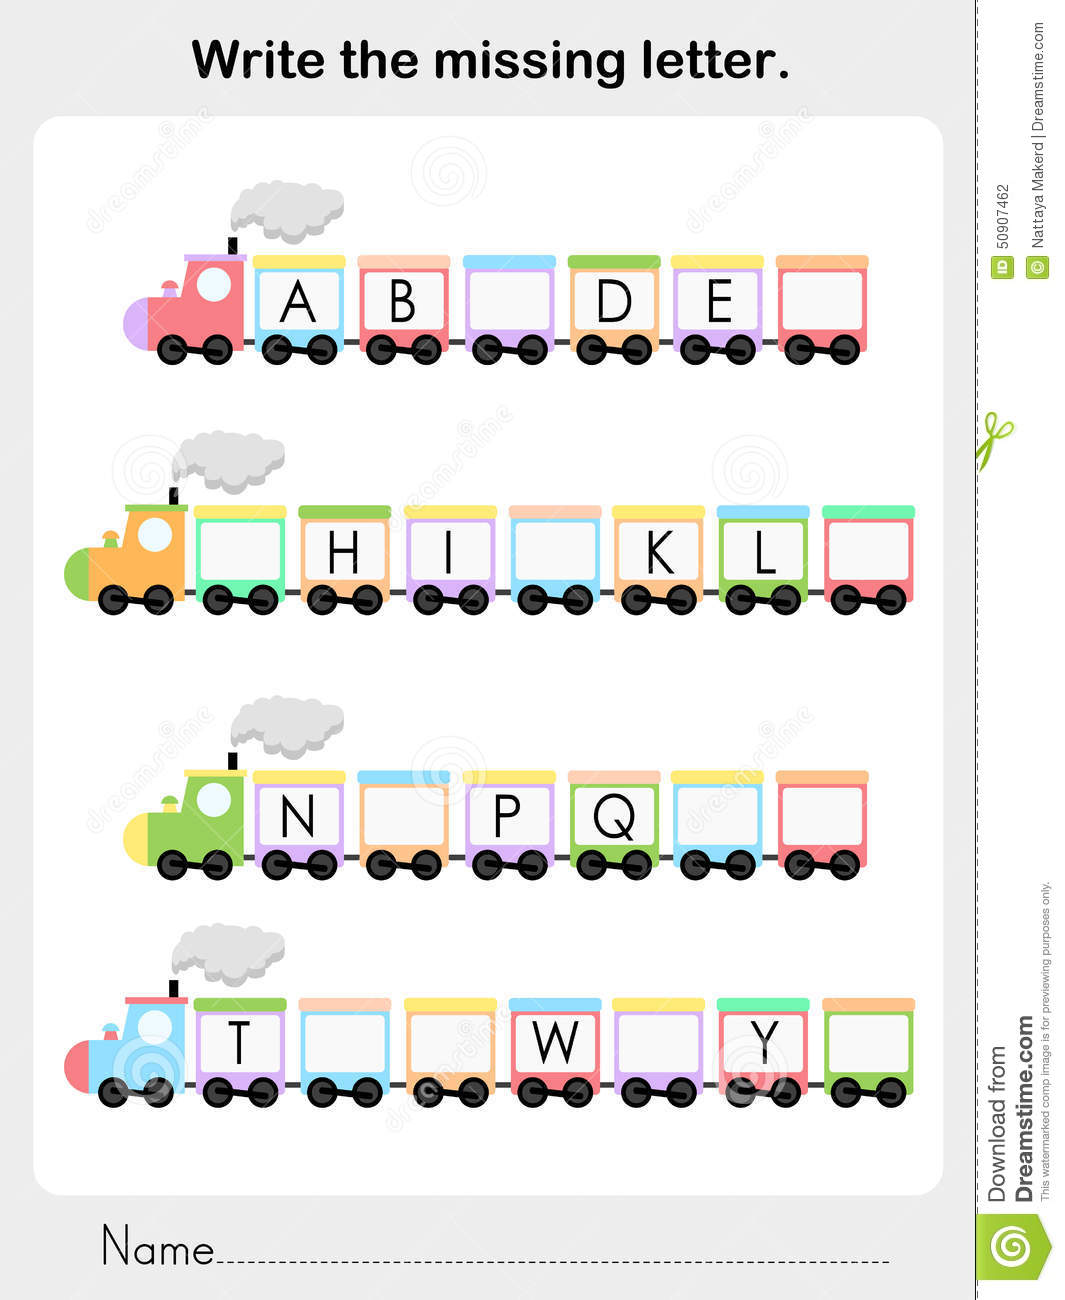 worksheet Missing Alphabet Worksheets write the missing letter worksheet for education stock vector education